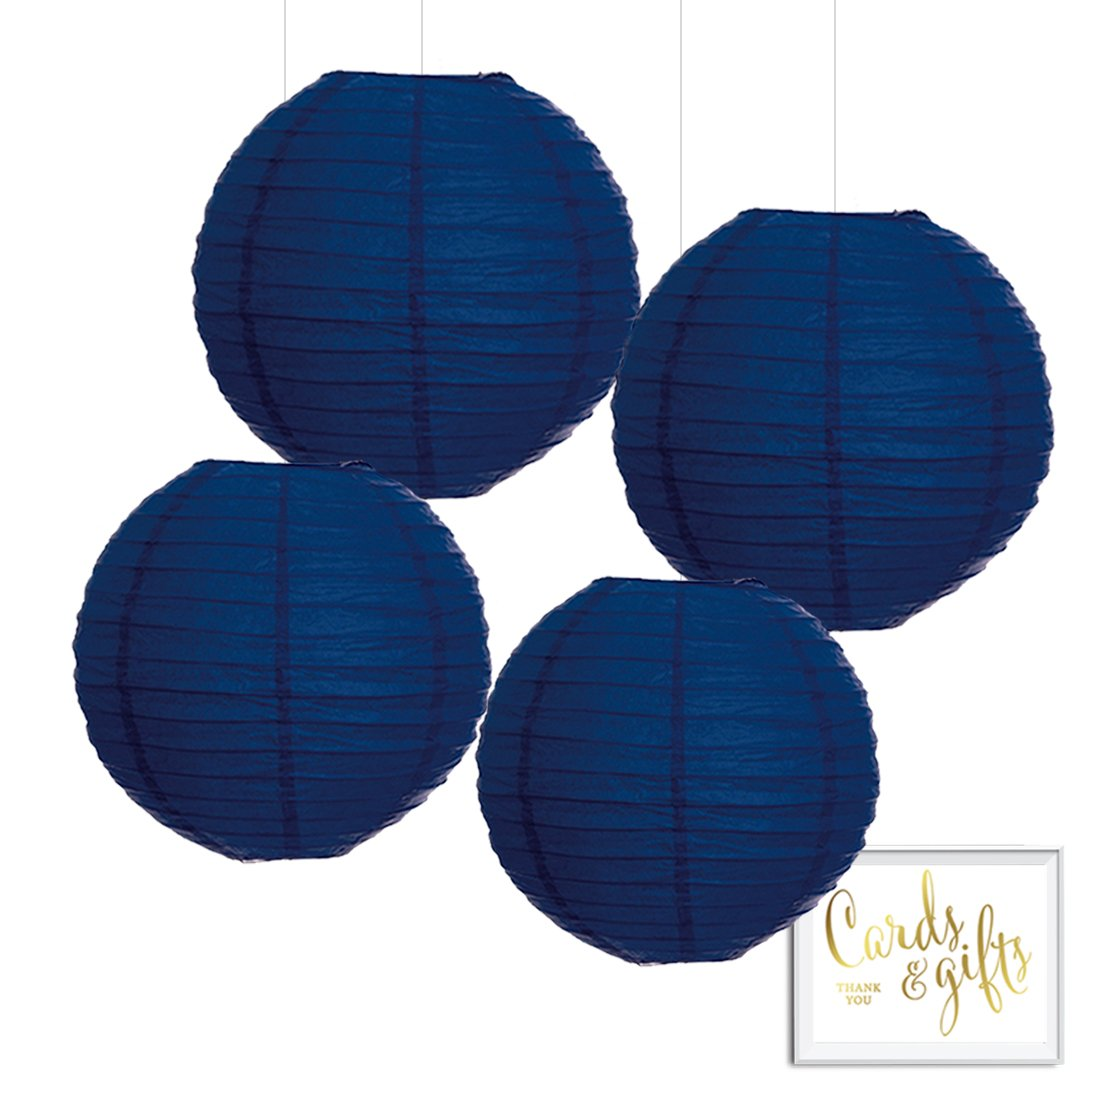 Amazon.com: Andaz Press Large Tissue Paper Pom Poms Hanging ...